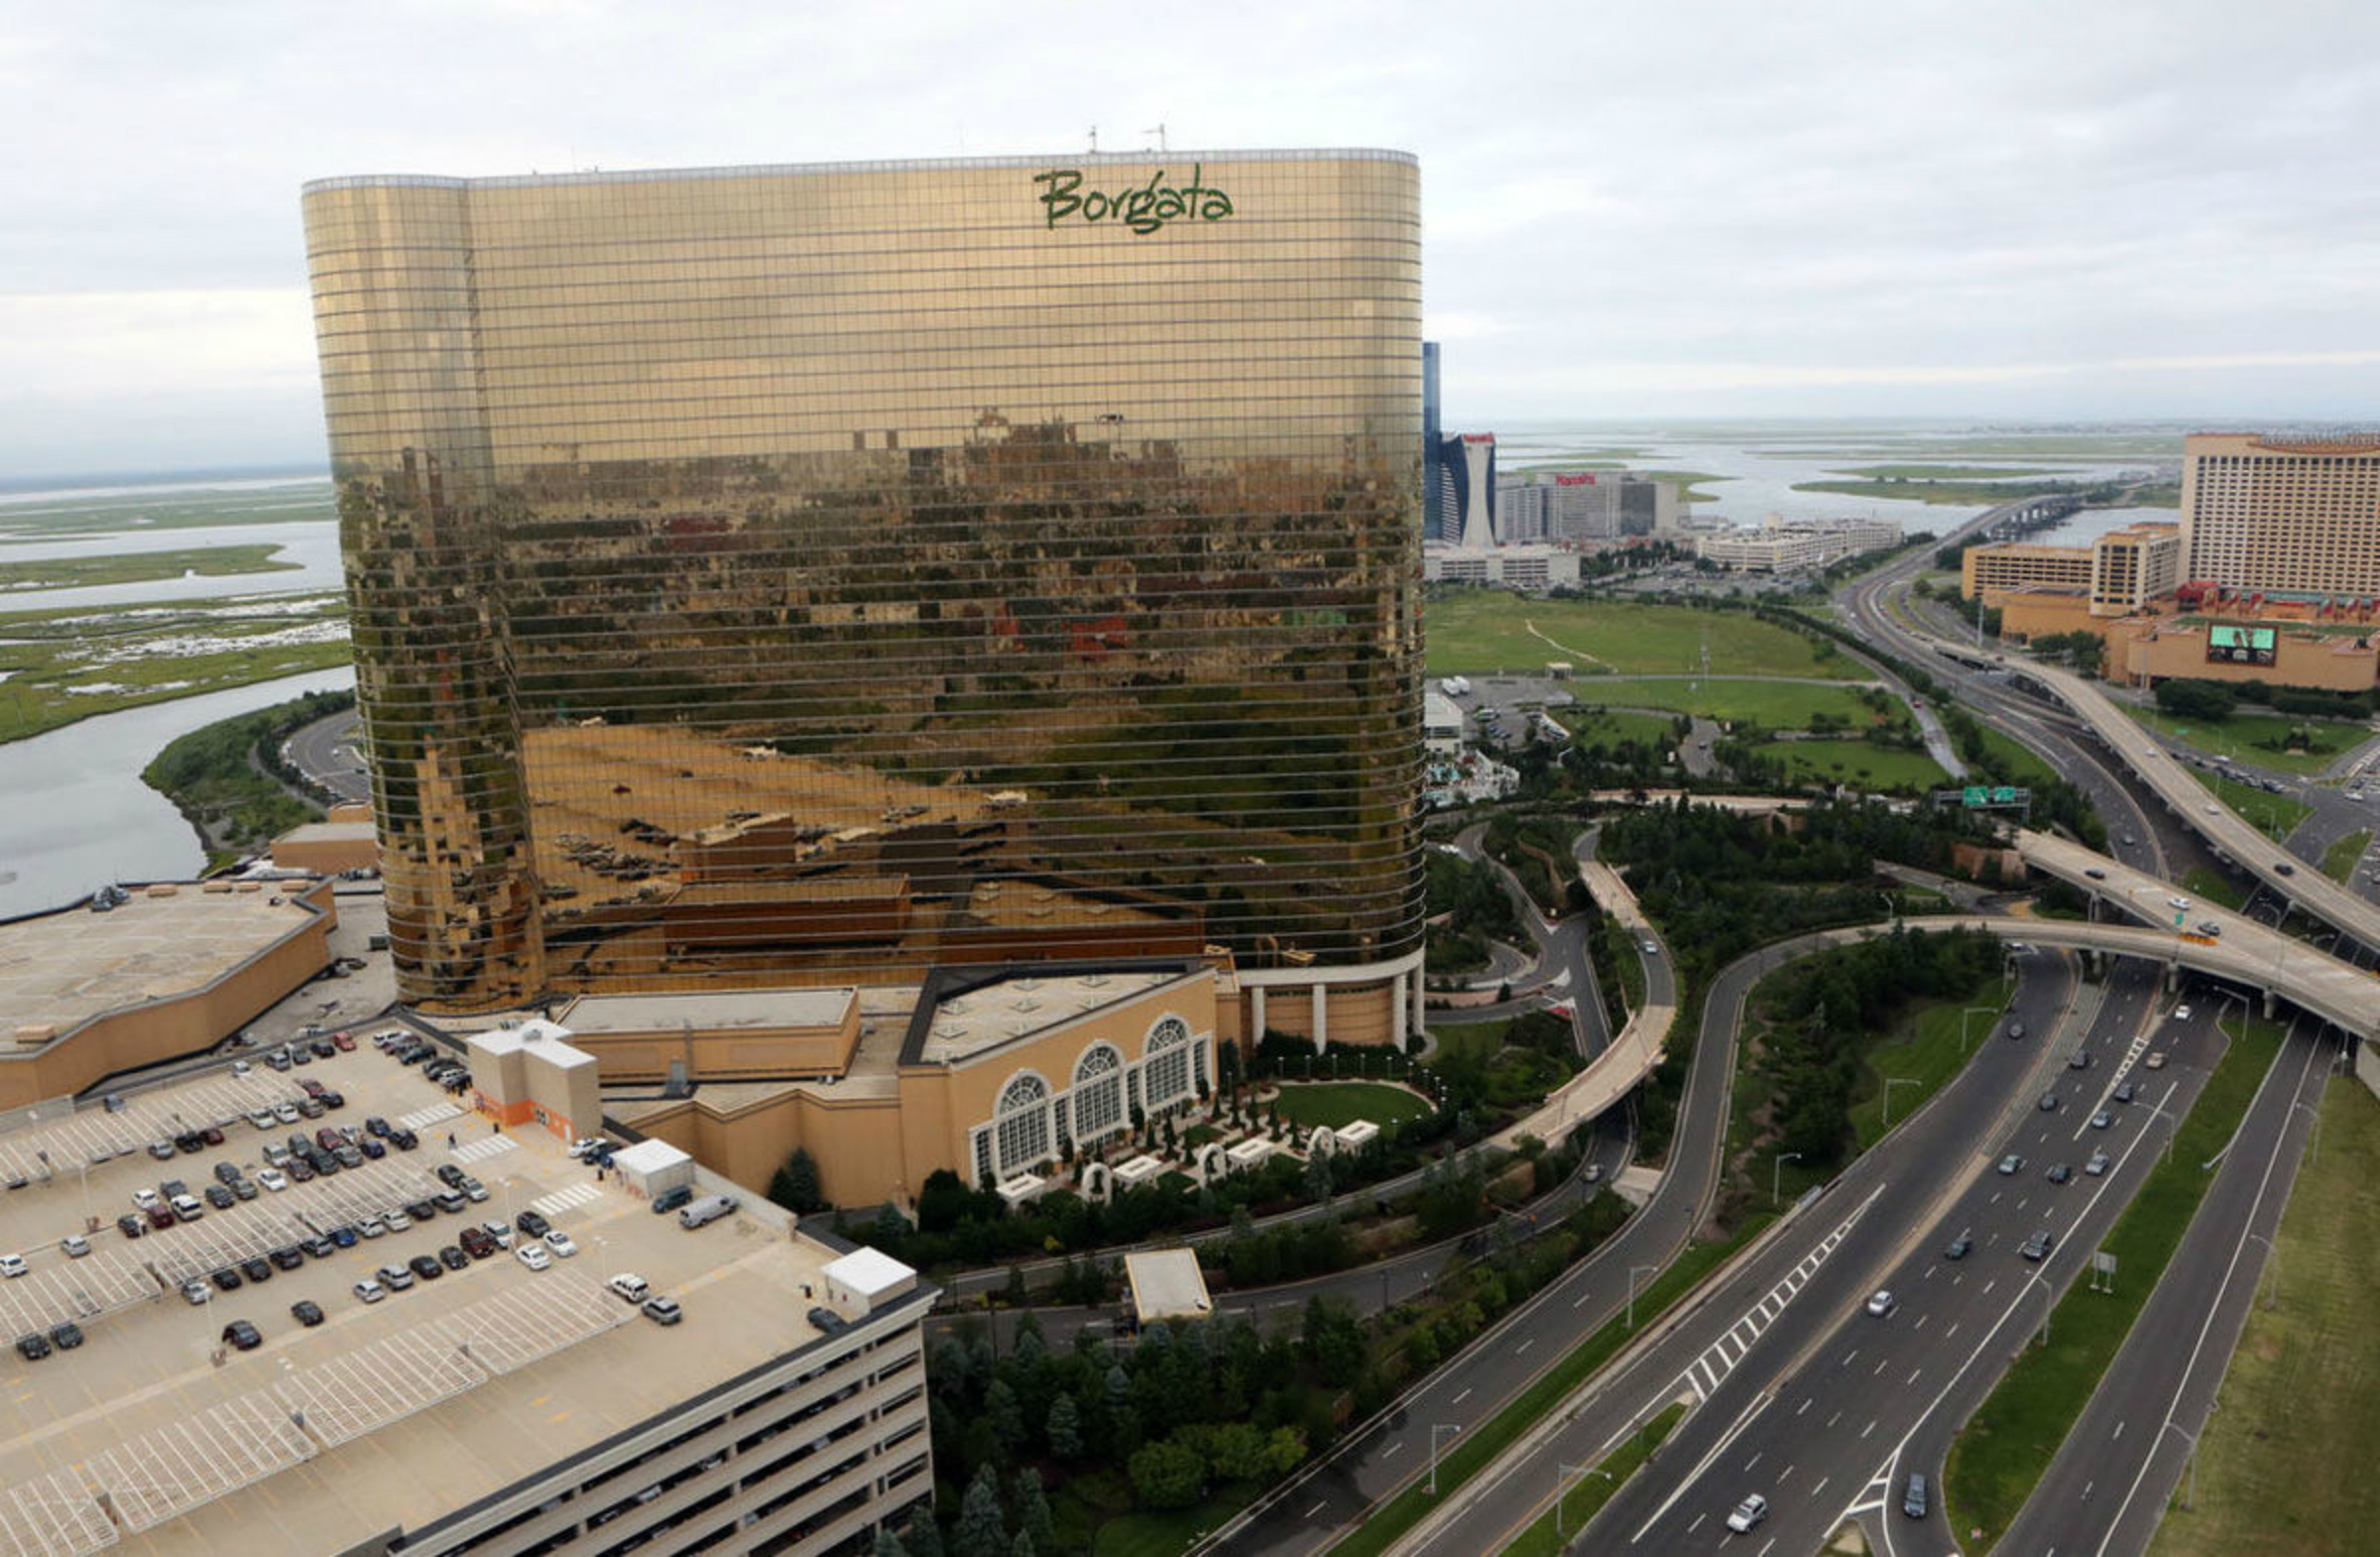 Atlantic City casinos Borgata